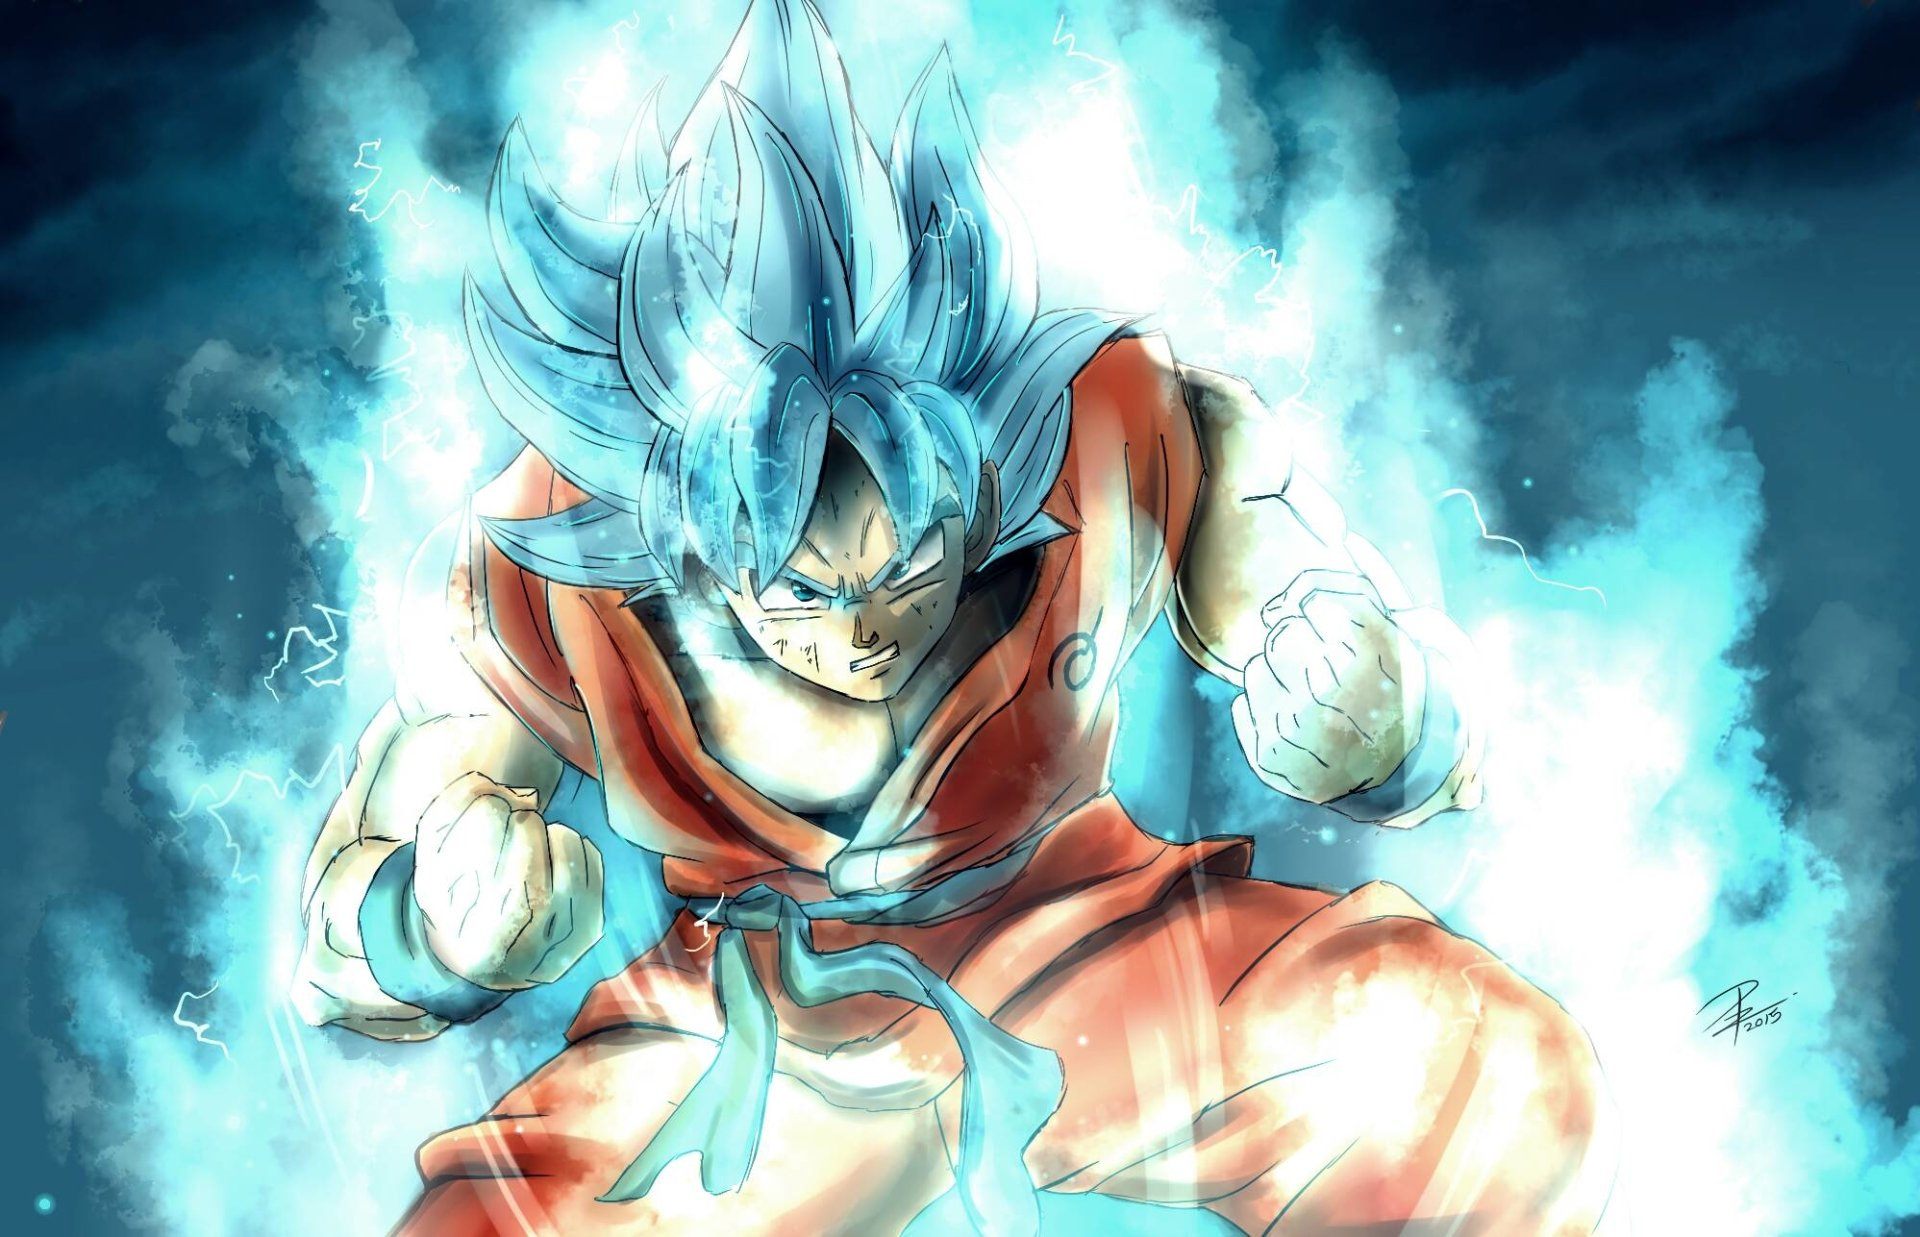 Anime - Dragon Ball Super  Goku Super Saiyan Blue Bakgrund